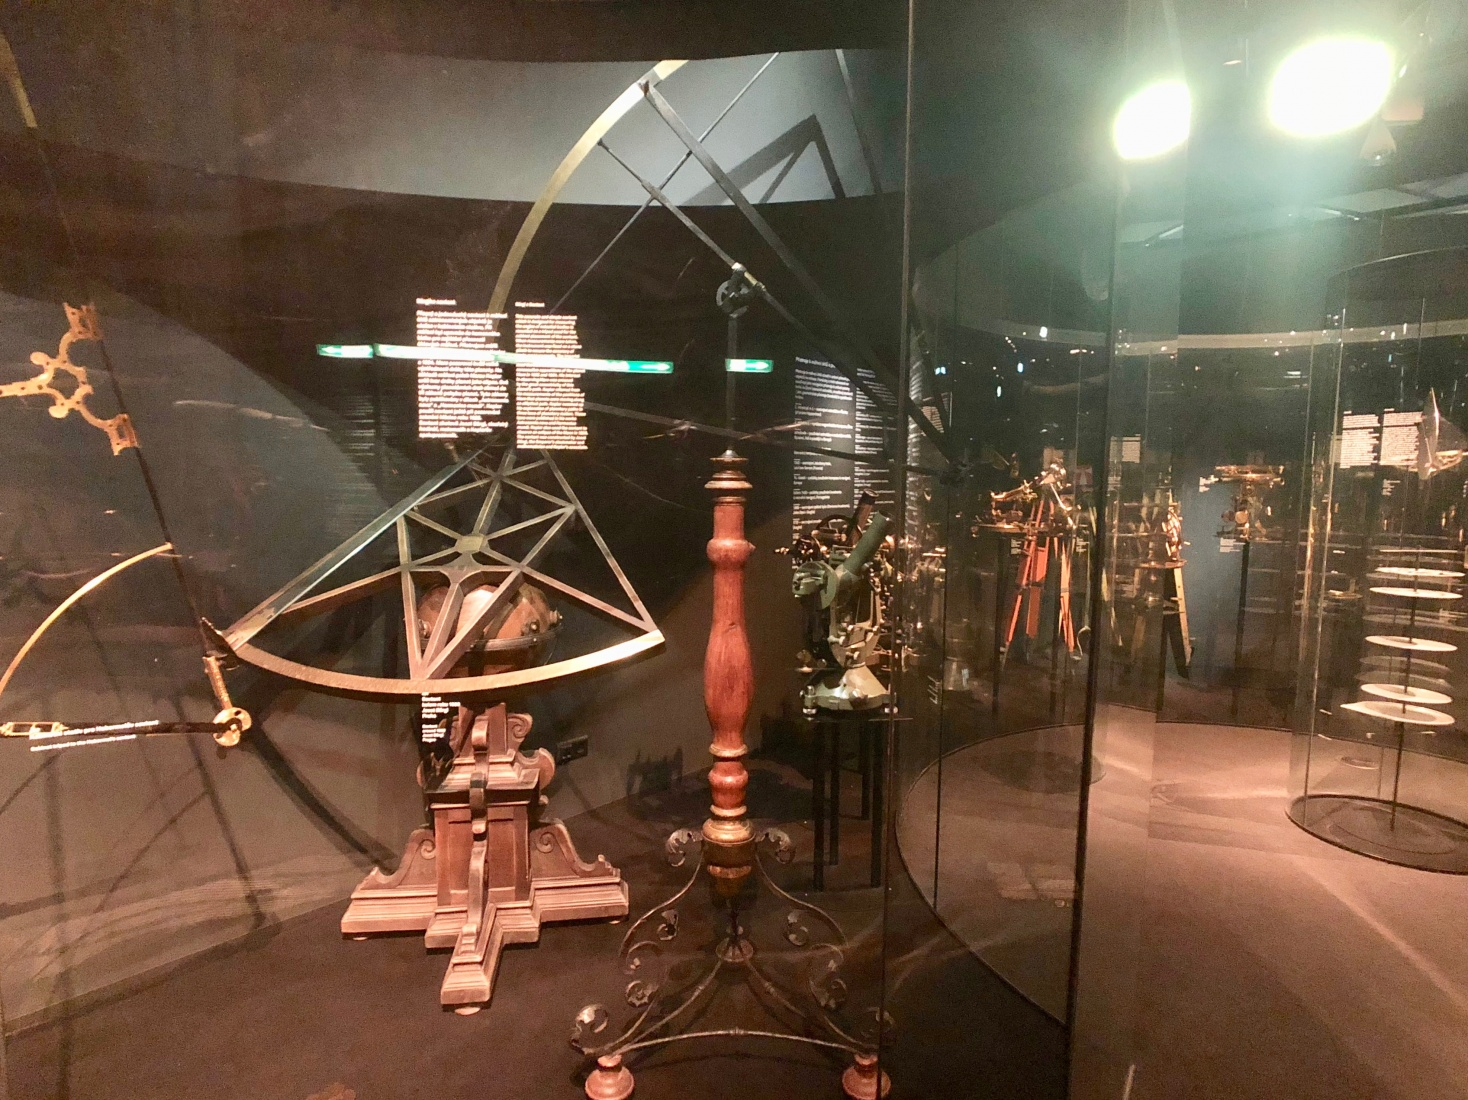 A large sextant used by Johannes Kepler to observe the position of Mars on two occasions, on display at Prague's National Technical Museum.